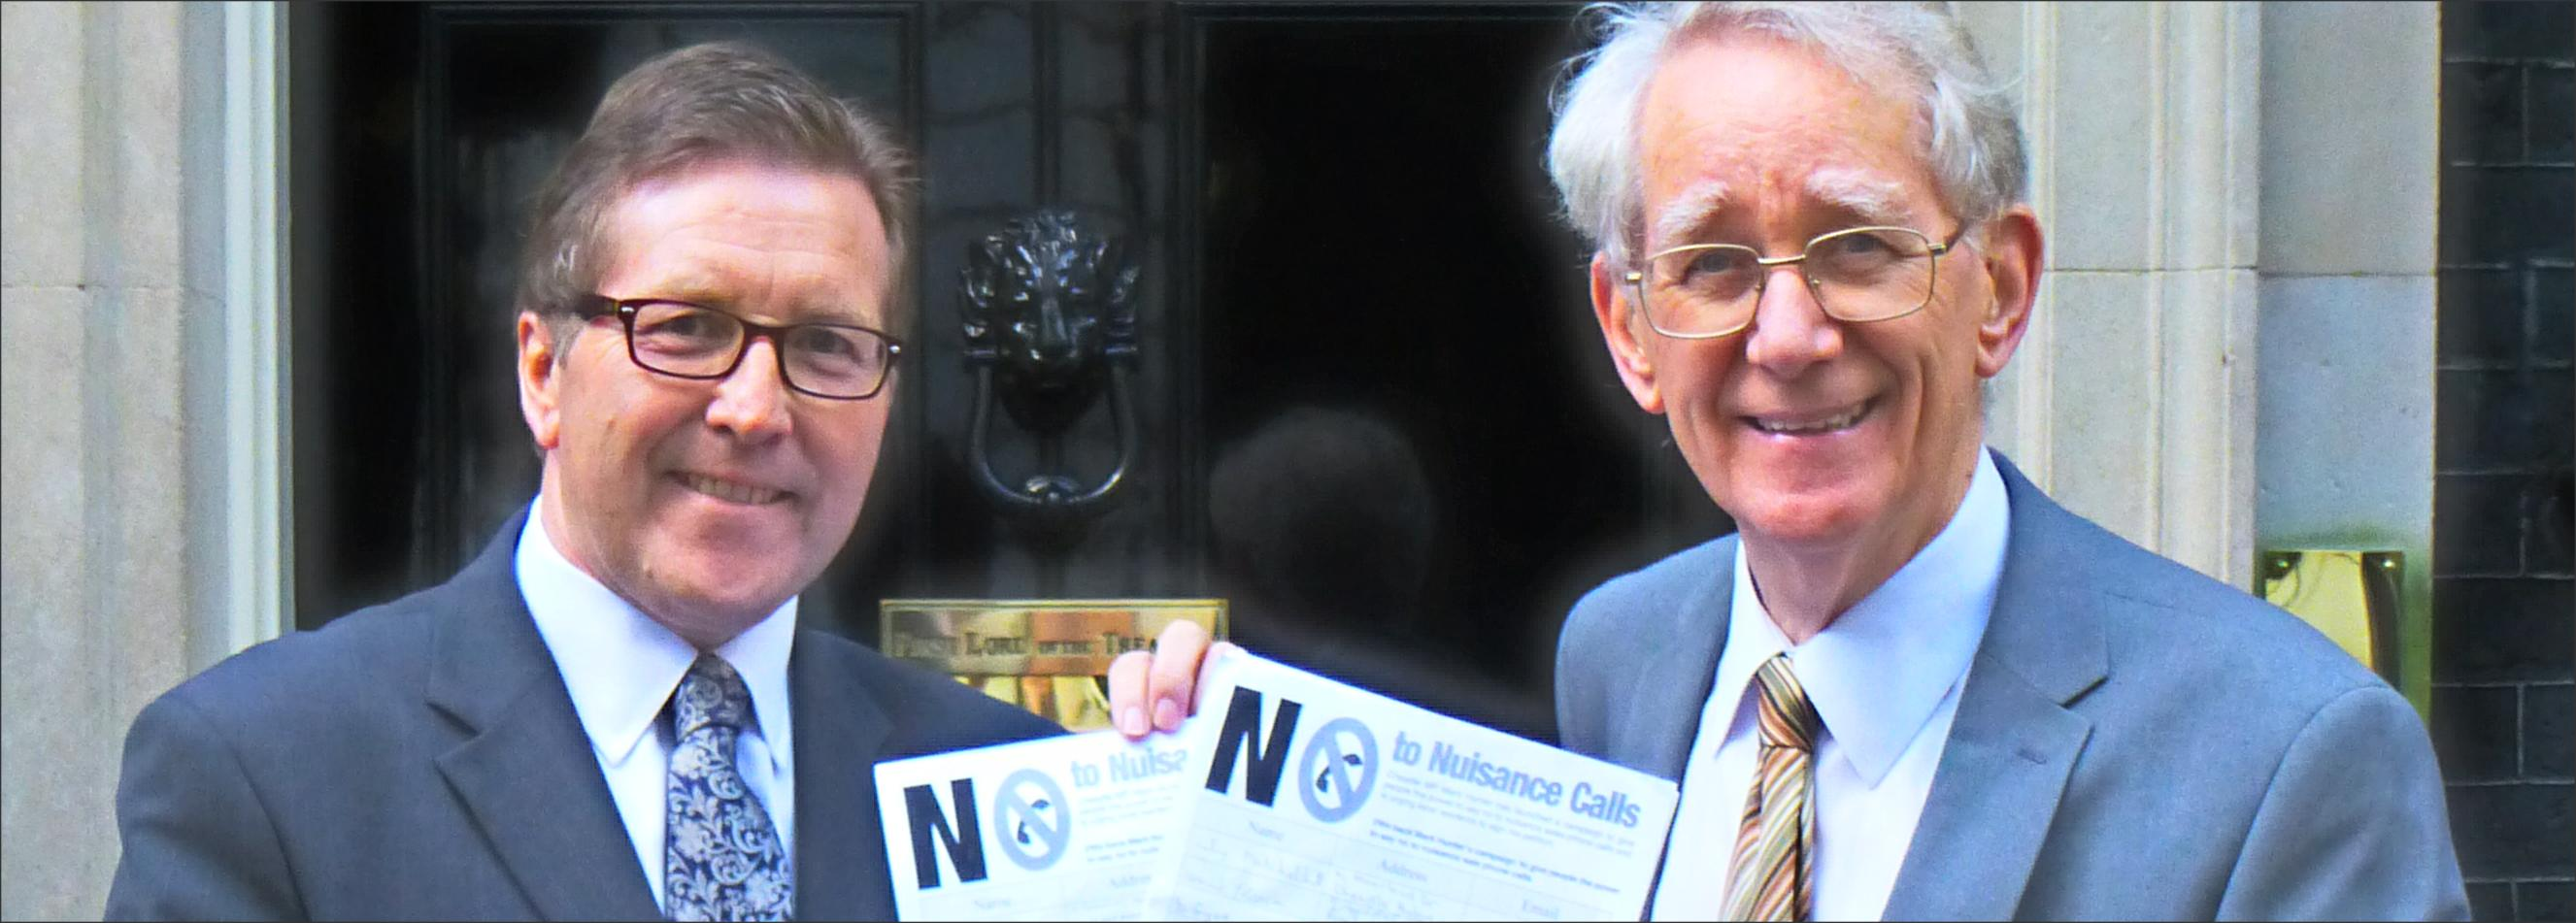 No 2 Nuisance Calls Petition